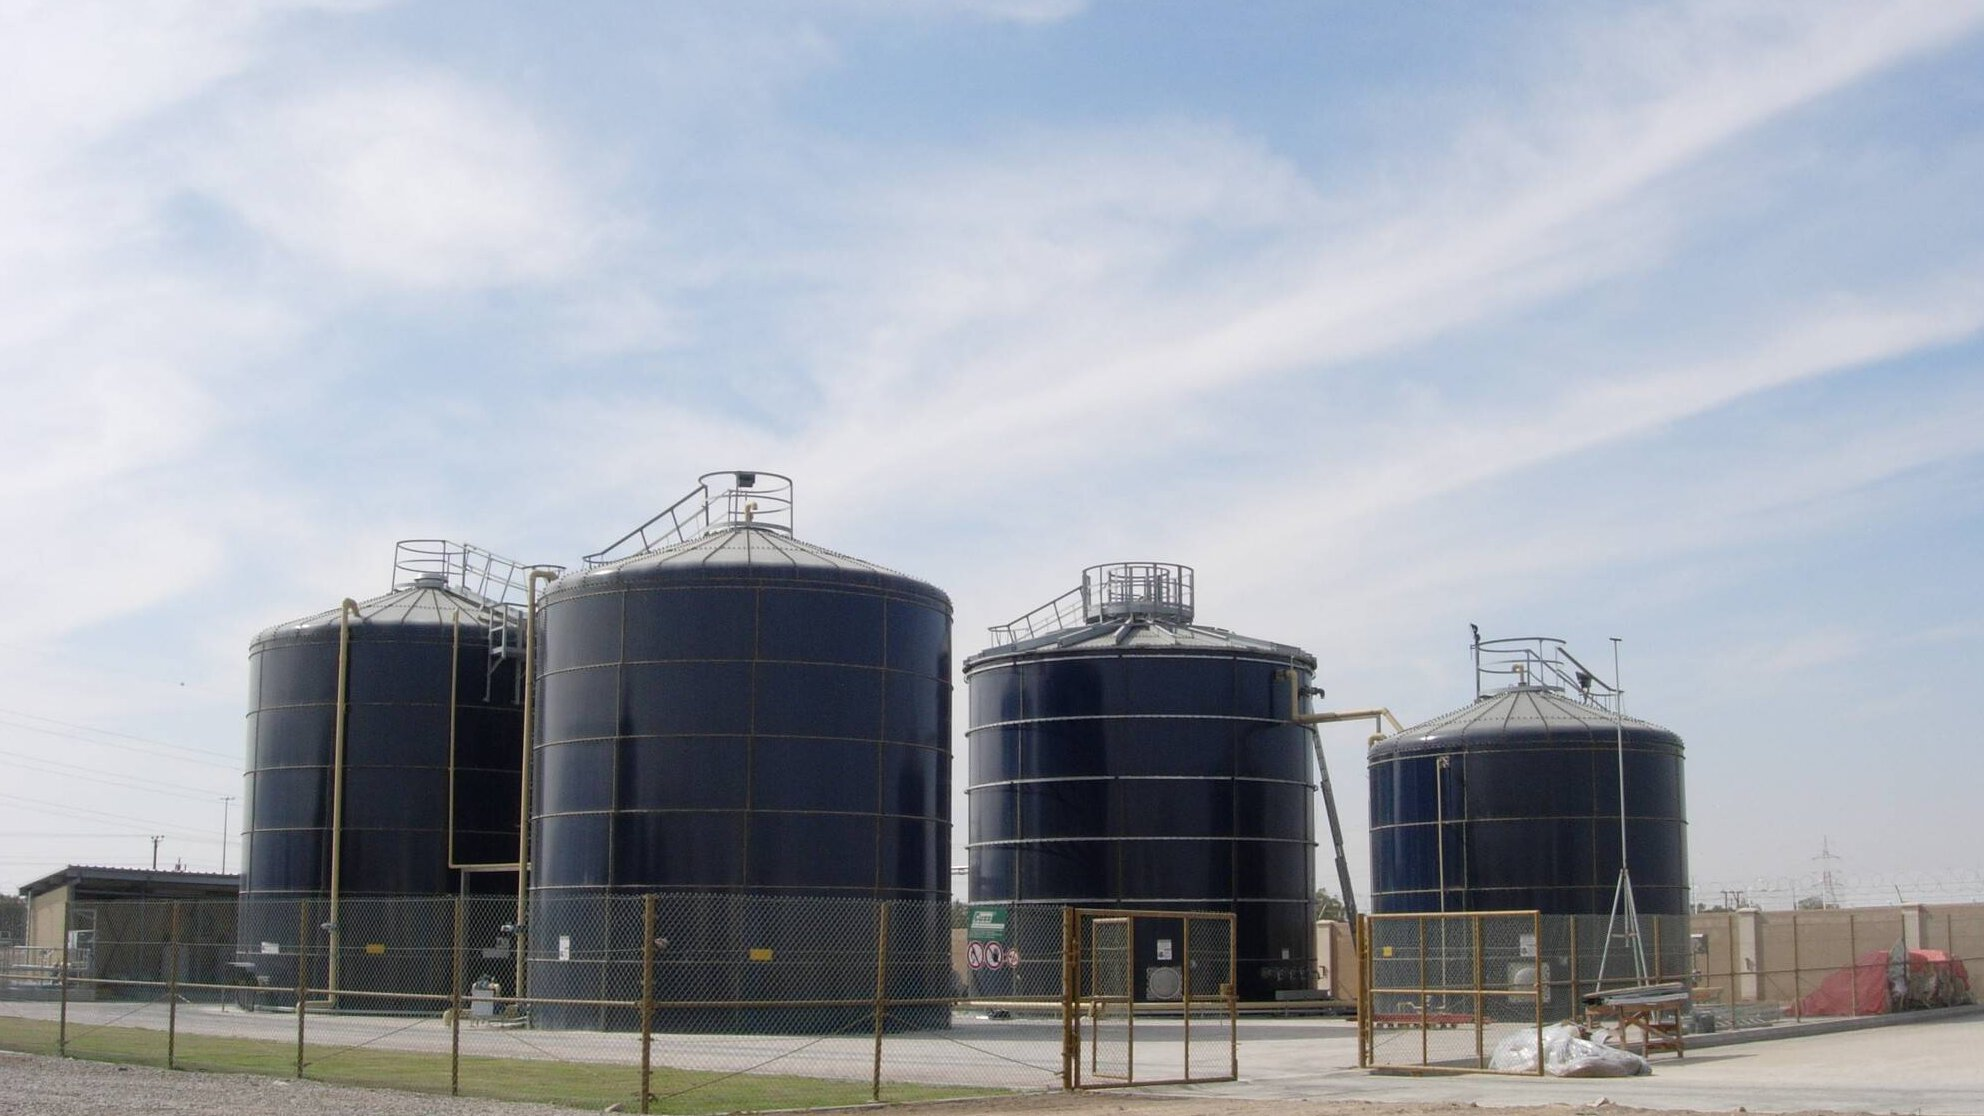 Gallery image 1 - Anaerobic wastewater treatment for a beverage production plant in the UAE, 800 m³/d